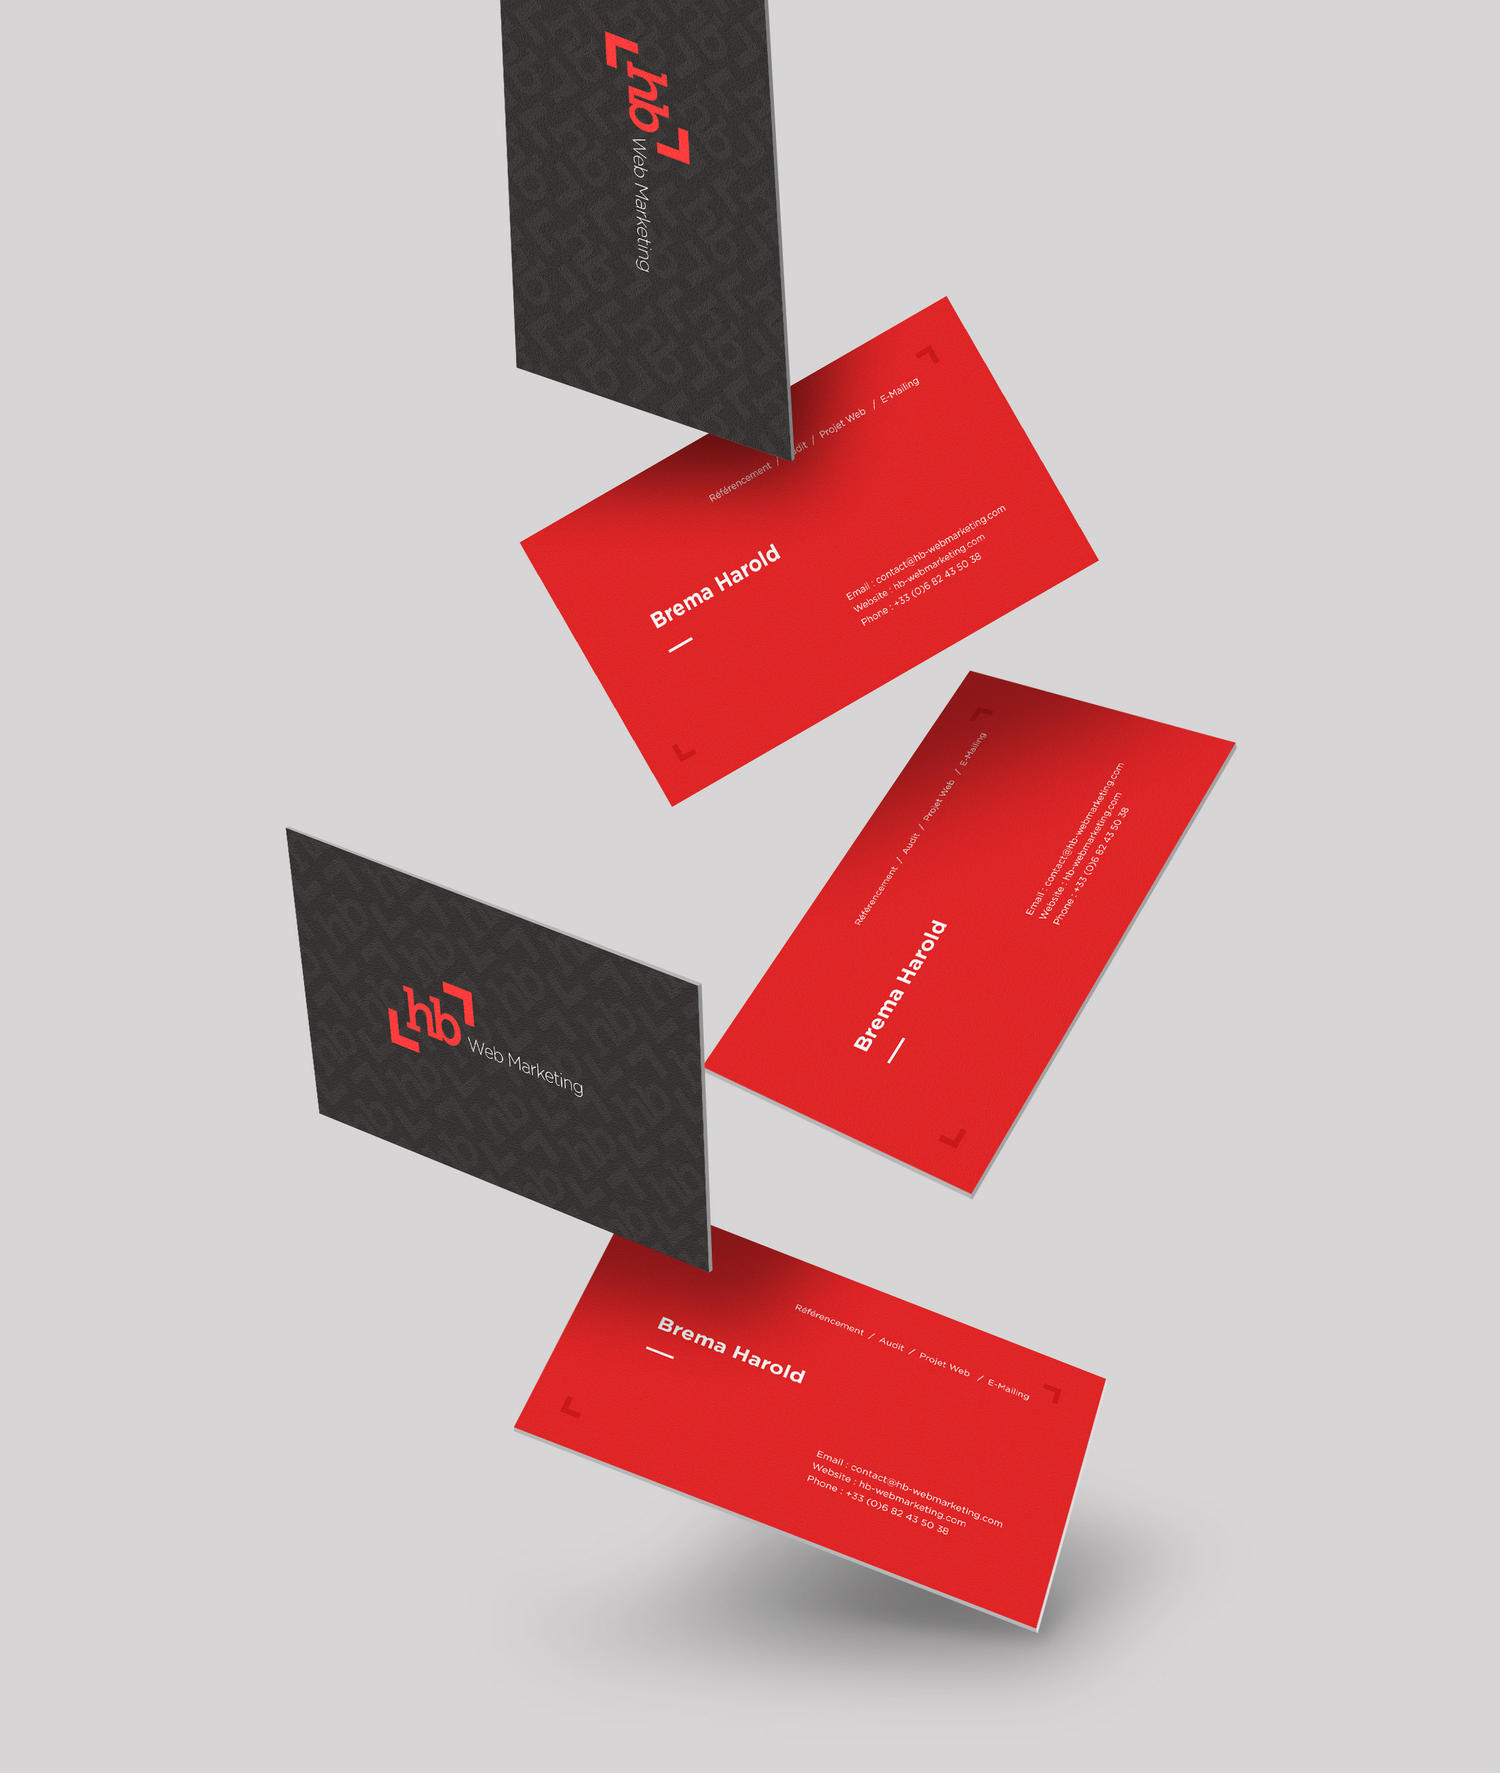 Business Card Design By Alandsgnr On Envato Studio